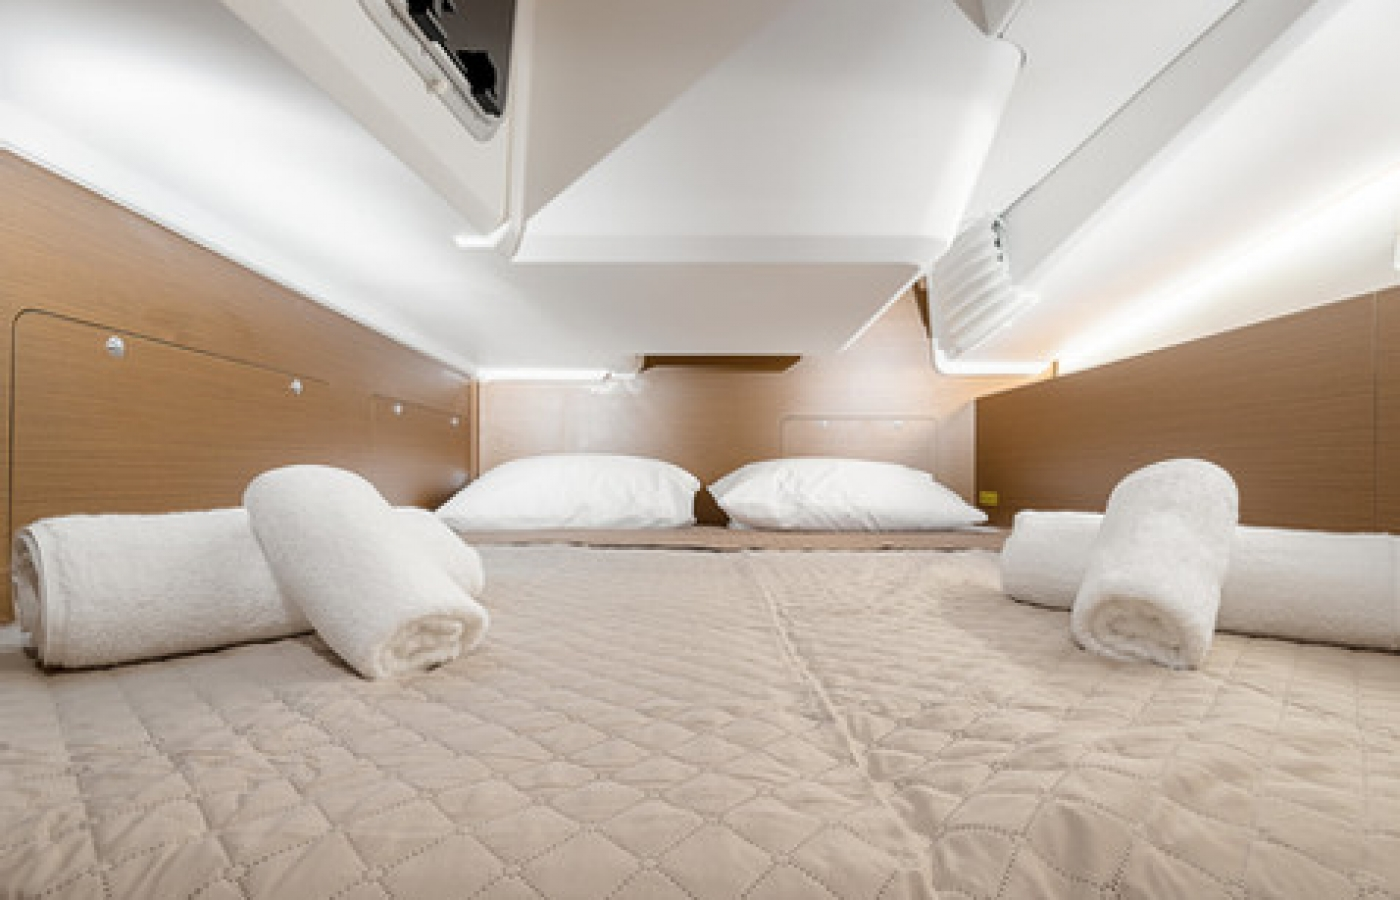 Cream and white bed sheets in the cabin